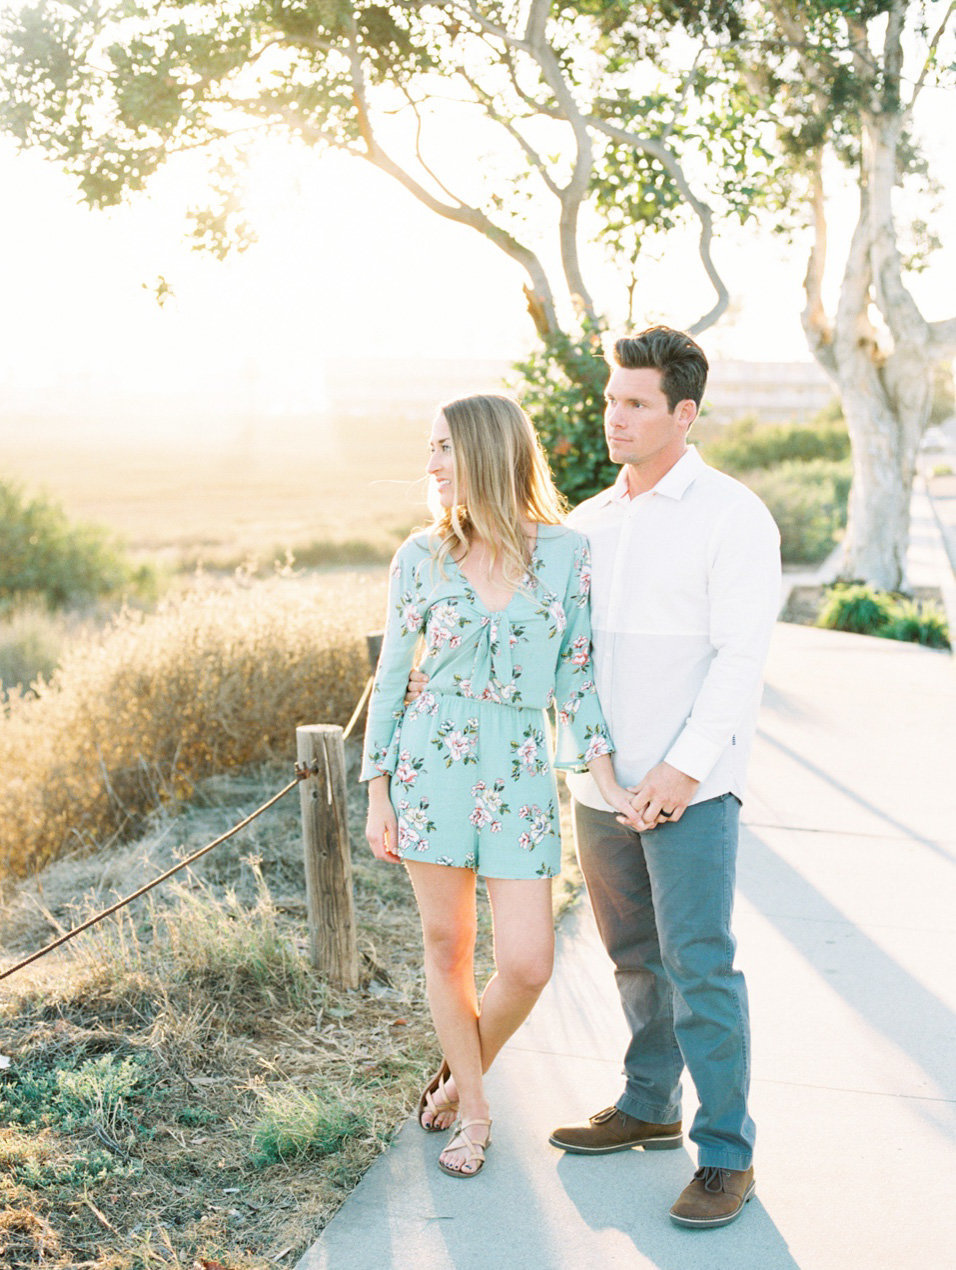 San-Diego-Engagement-Photographer-Mandy-Ford-002